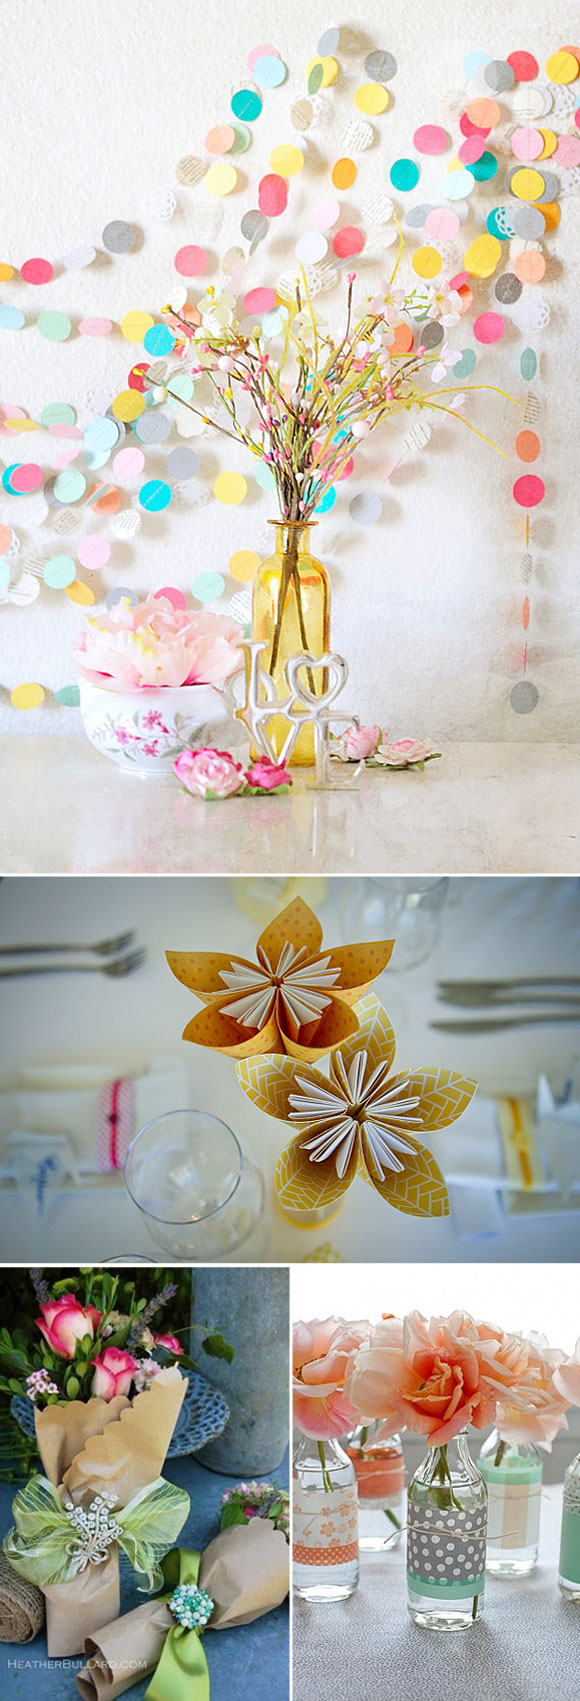 Decoraci n con papel - Decorar con papel ...